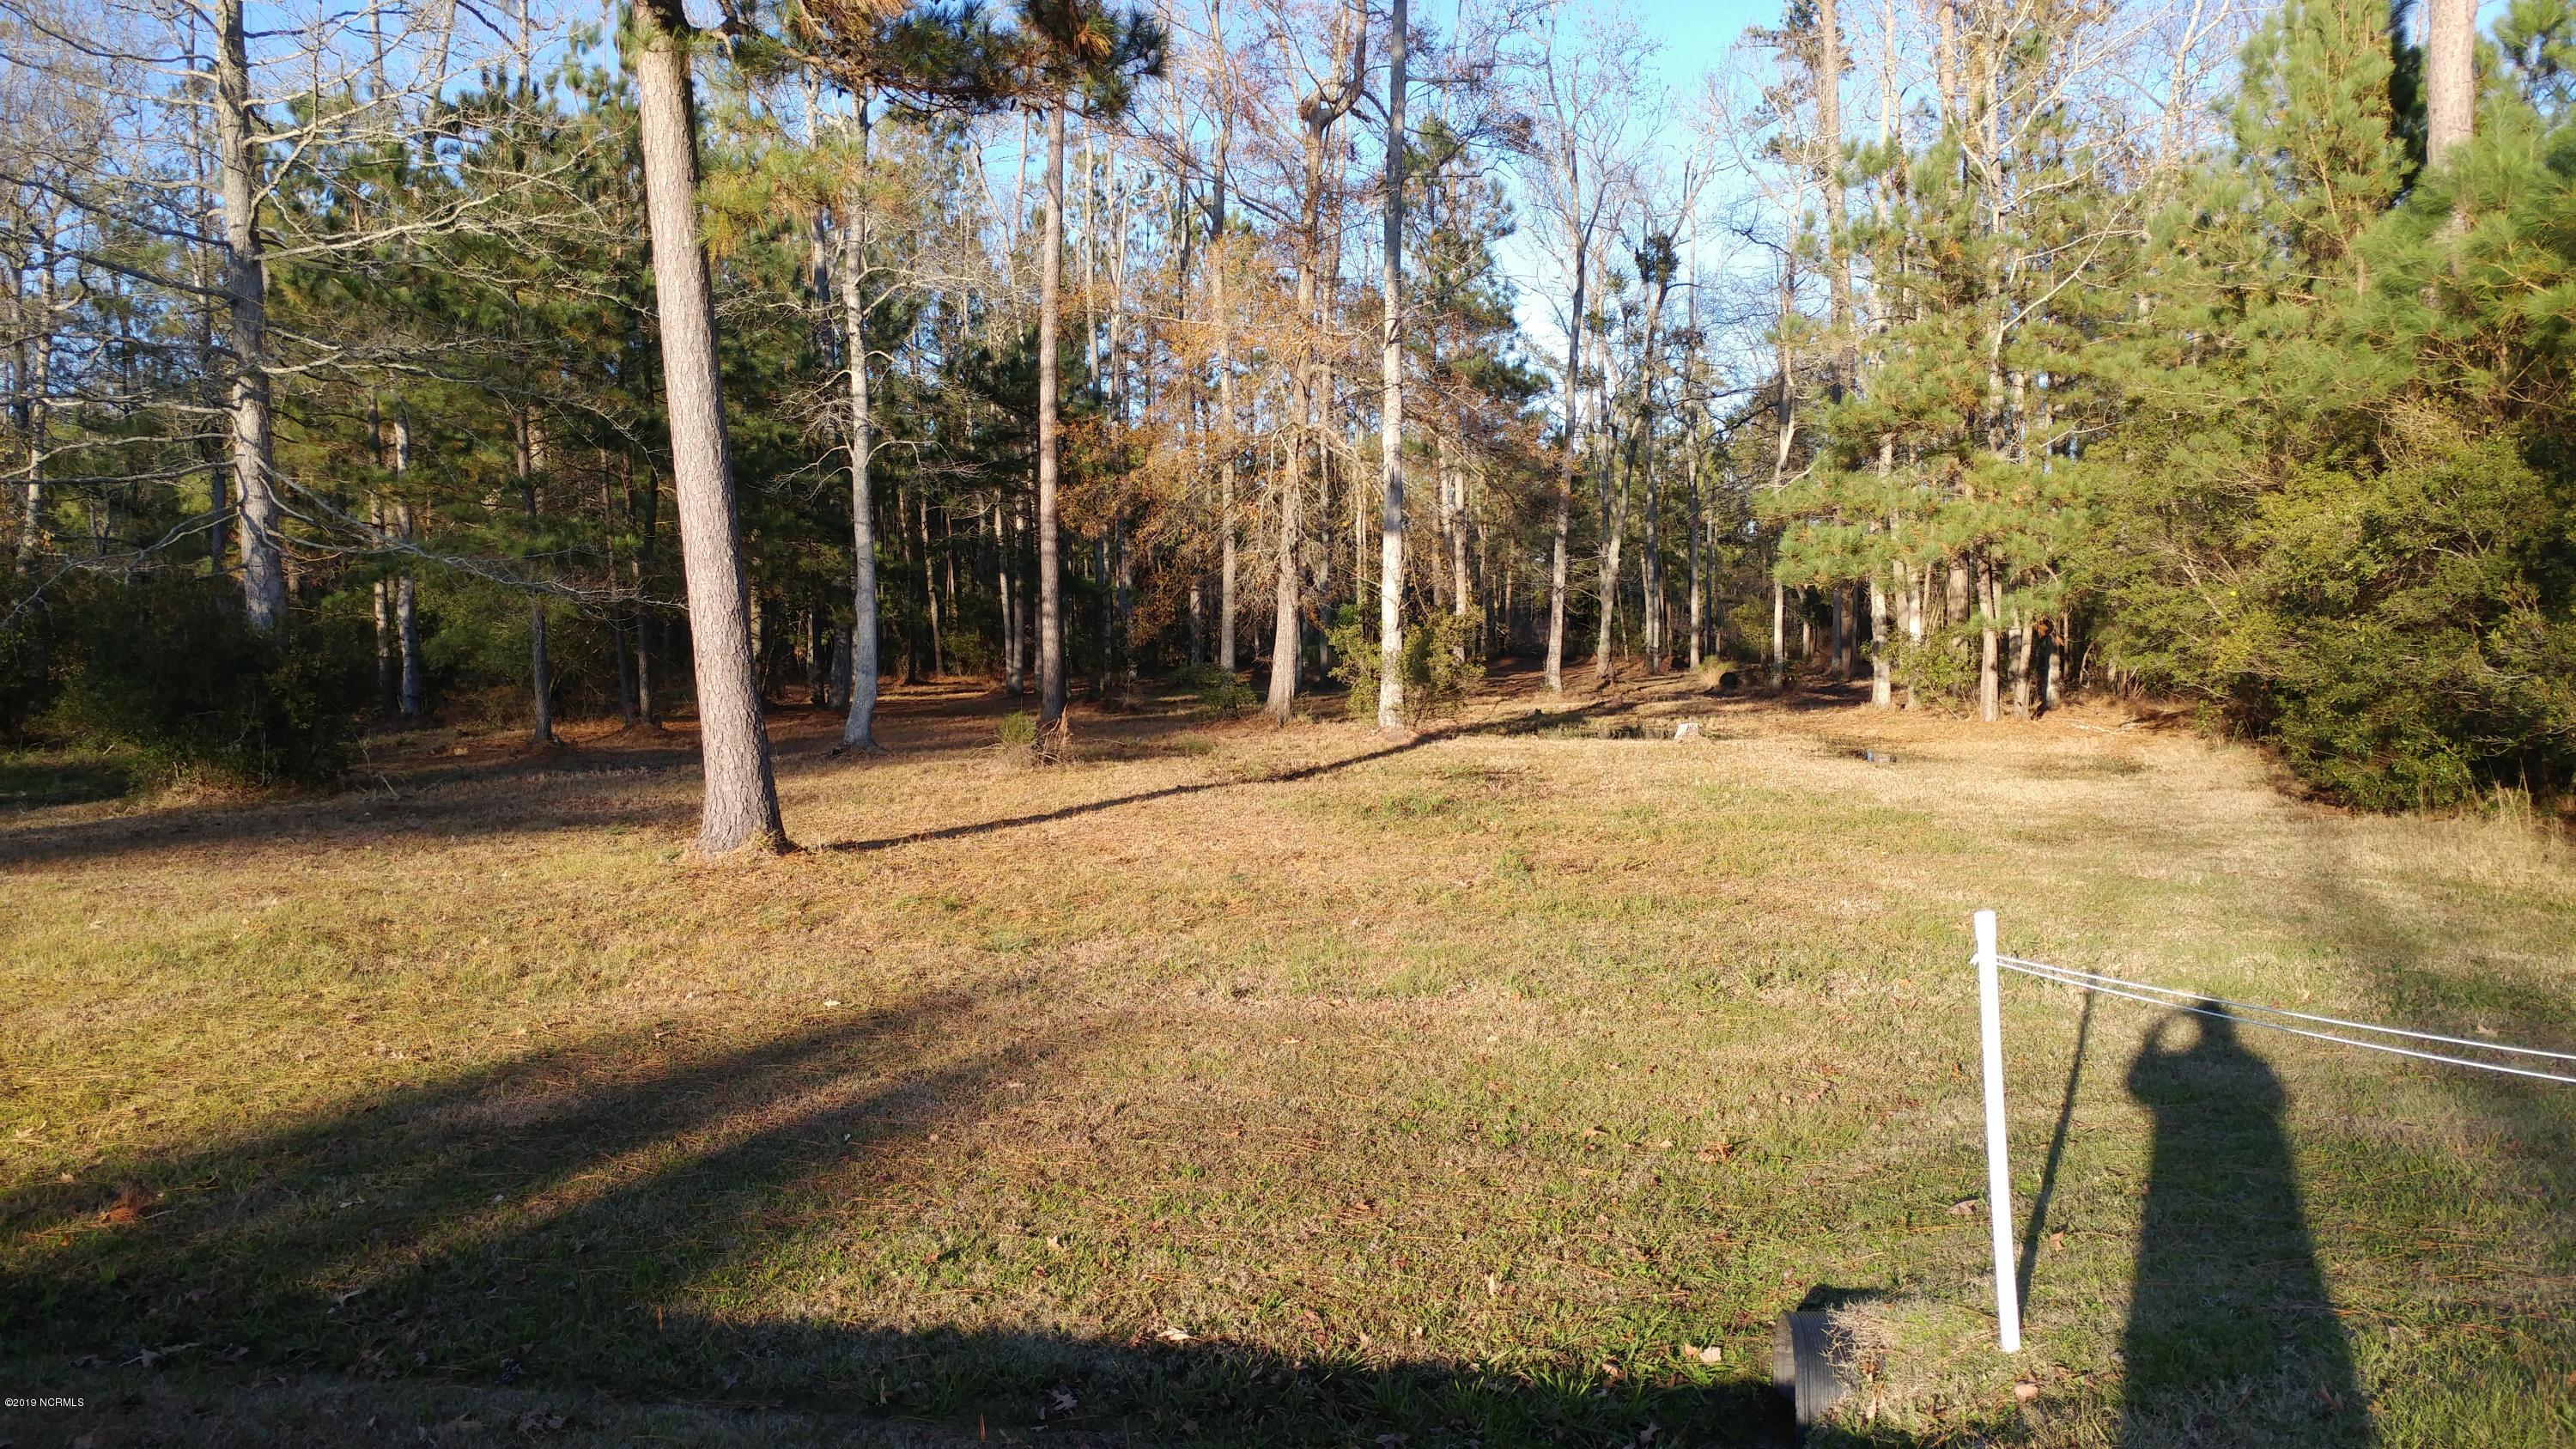 Lot 92 Dowry Creek, Belhaven, North Carolina 27810, ,Residential land,For sale,Dowry,100197122